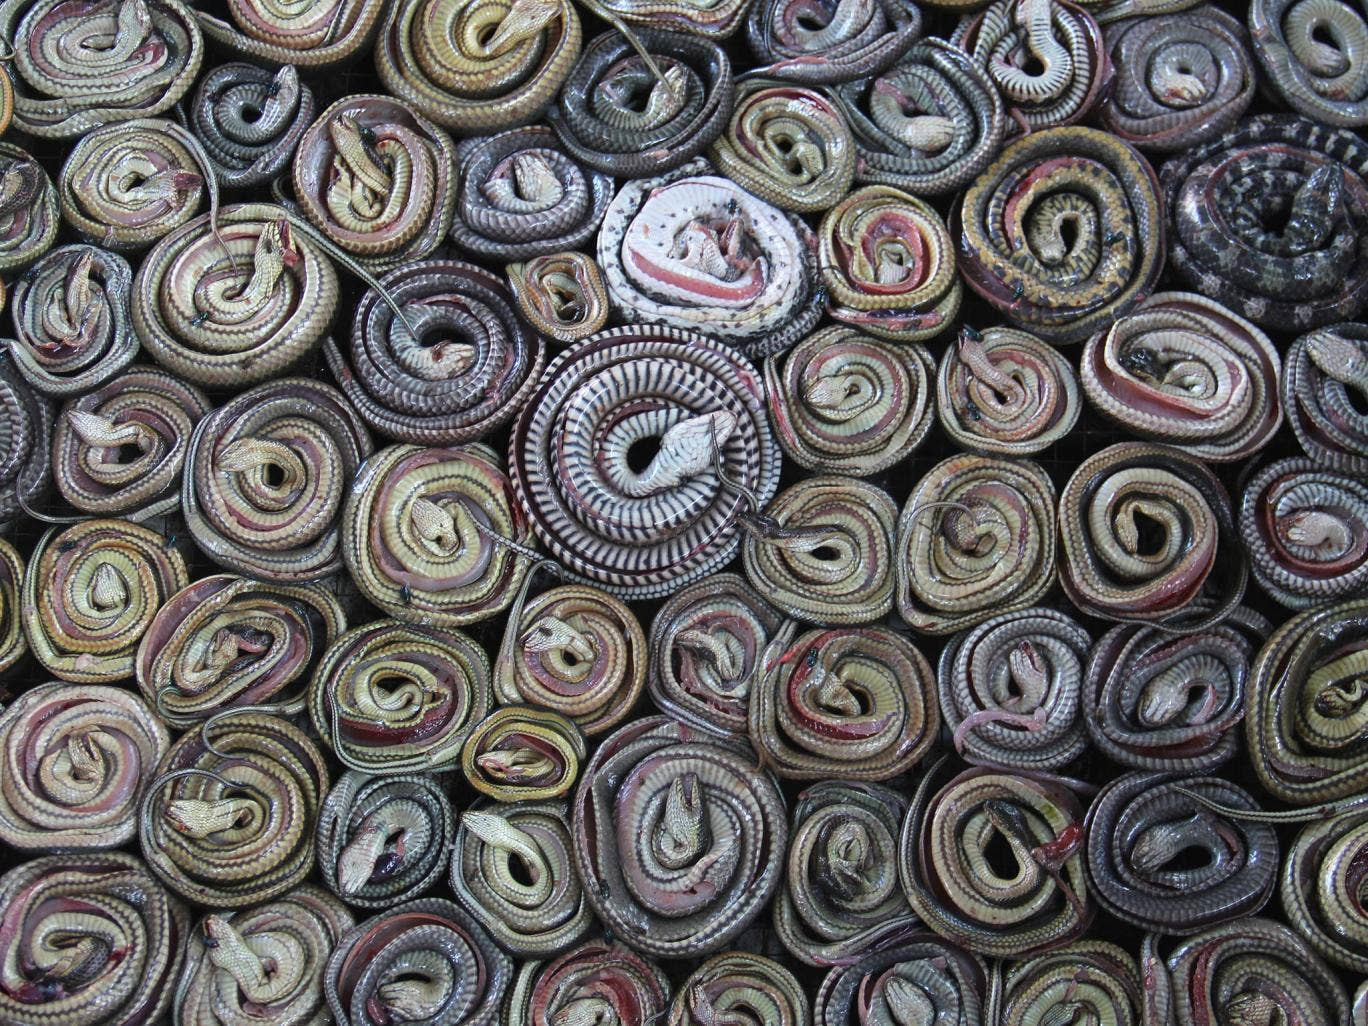 Snakes are collected and rolled before putting into the oven in the village of Kertasura, Cirebon